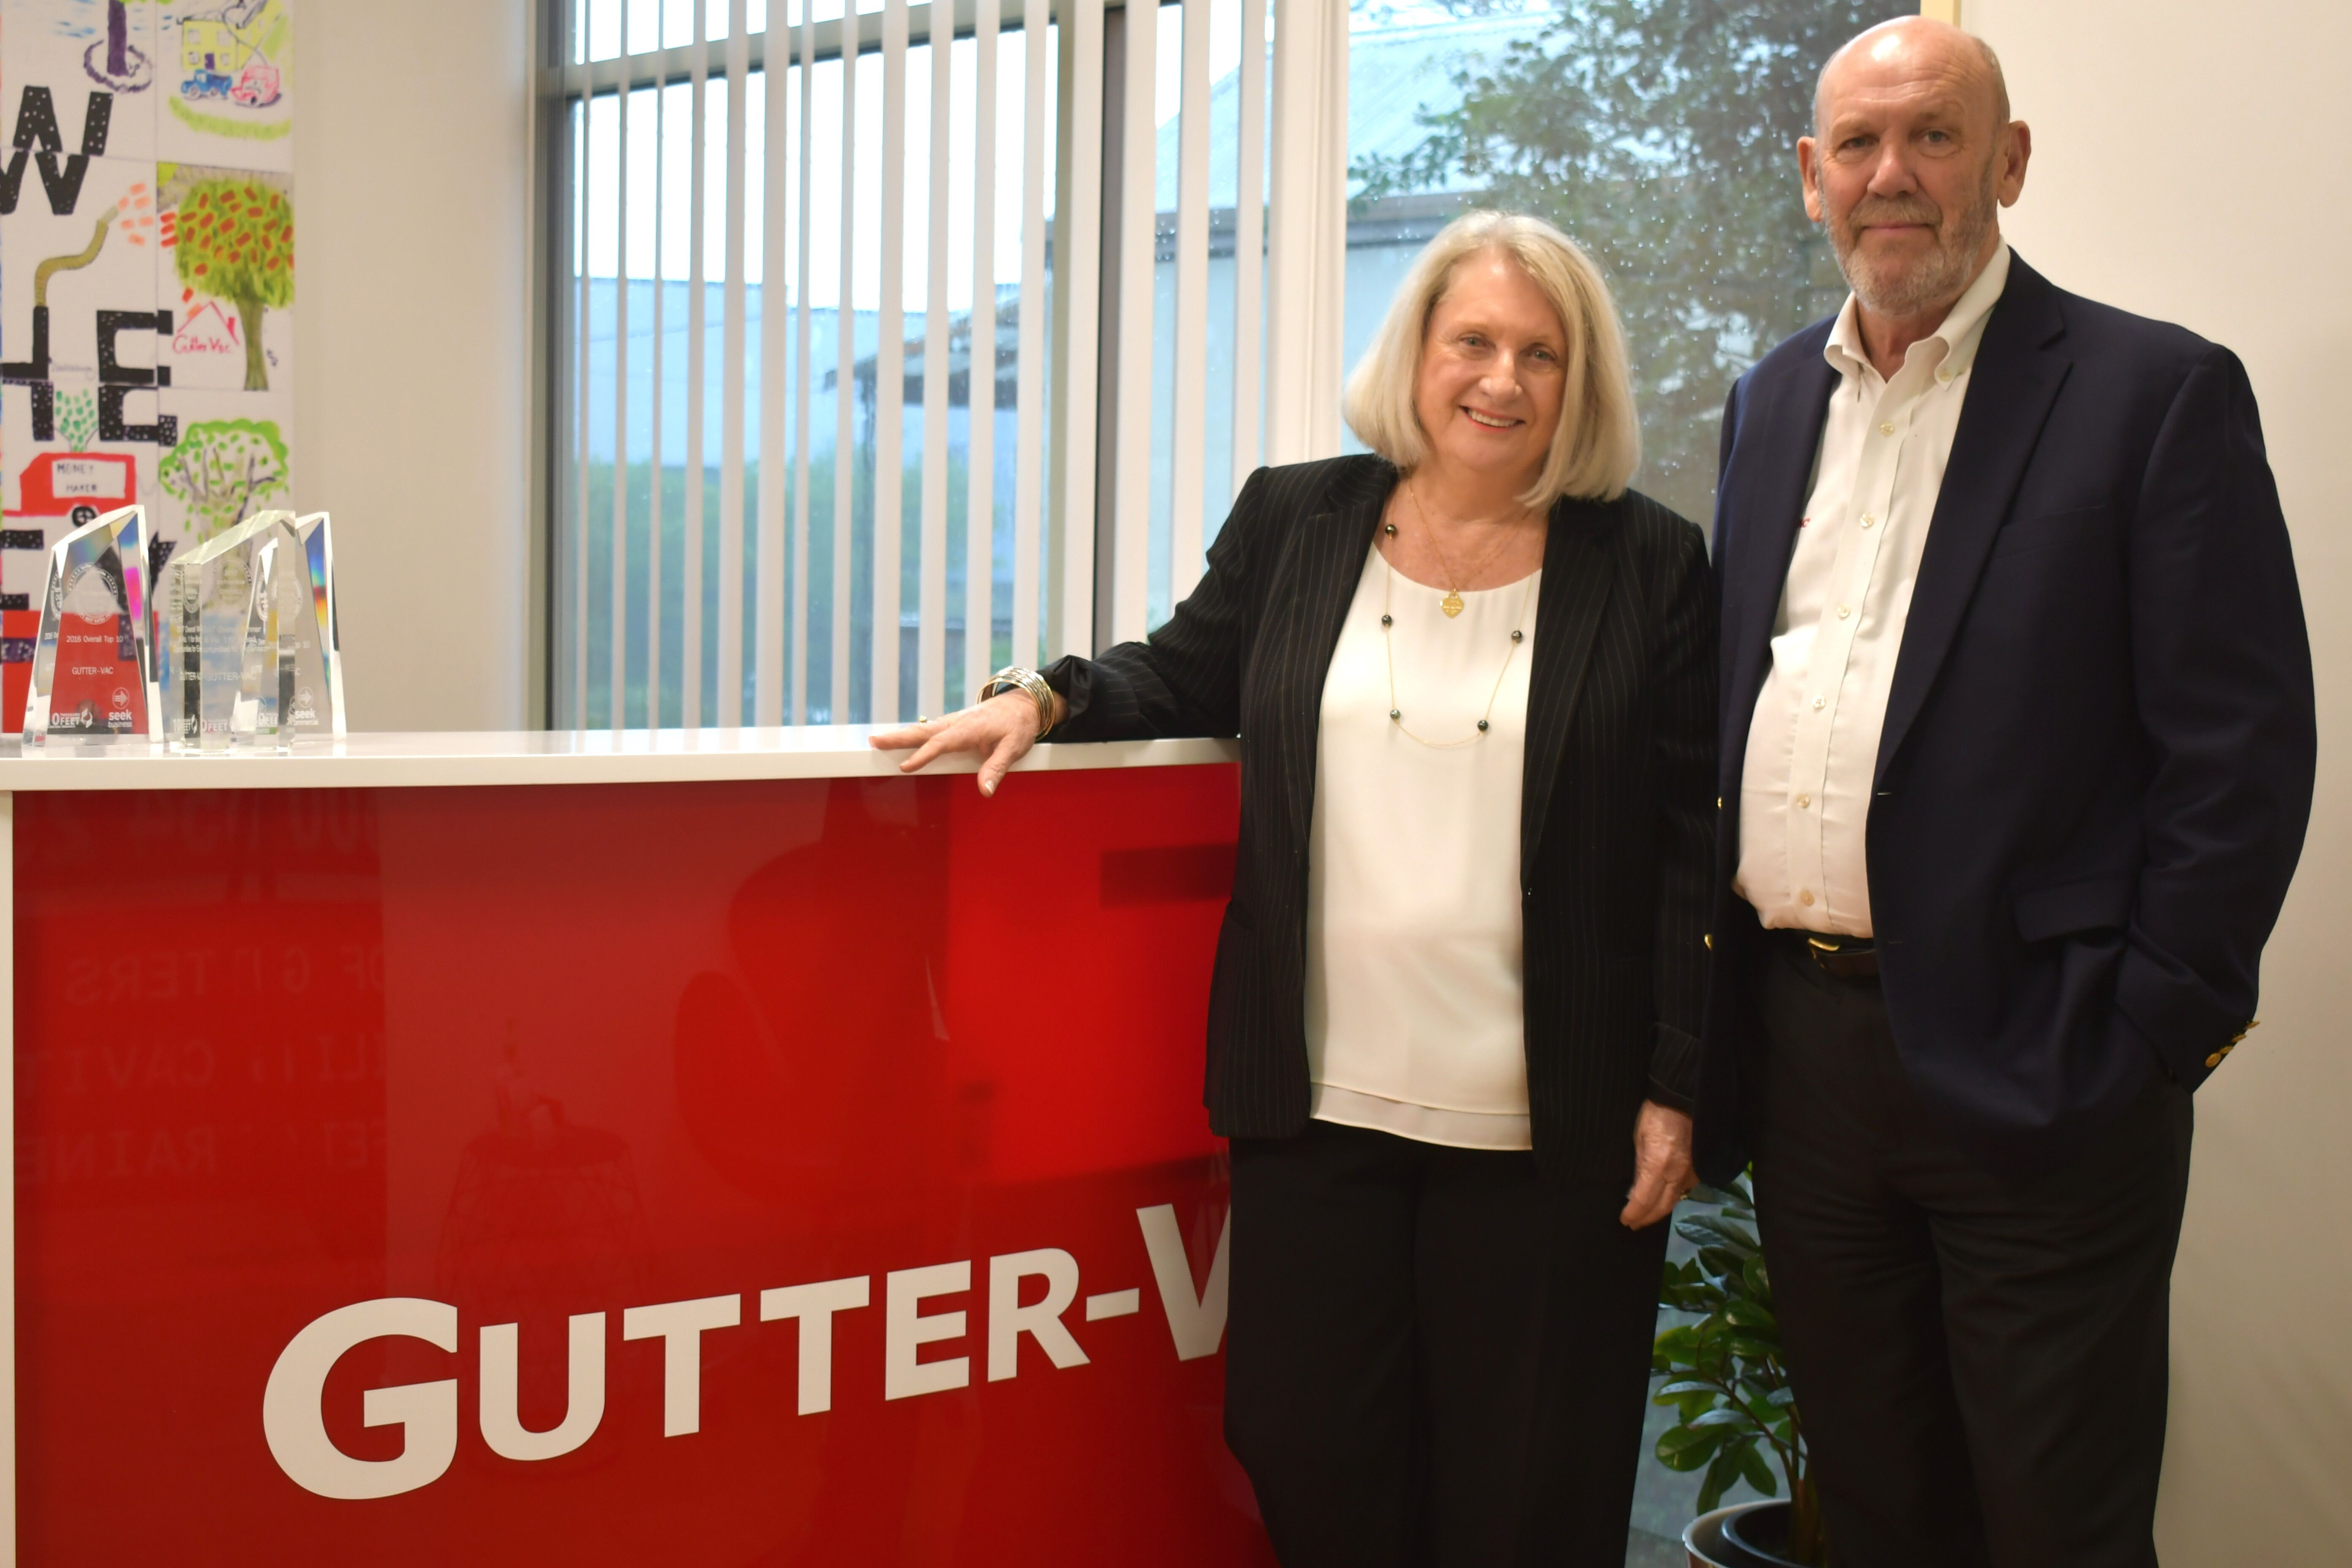 Gutter-Vac founders Anne and Warren Ballantyne | Inside Franchise Business Executive